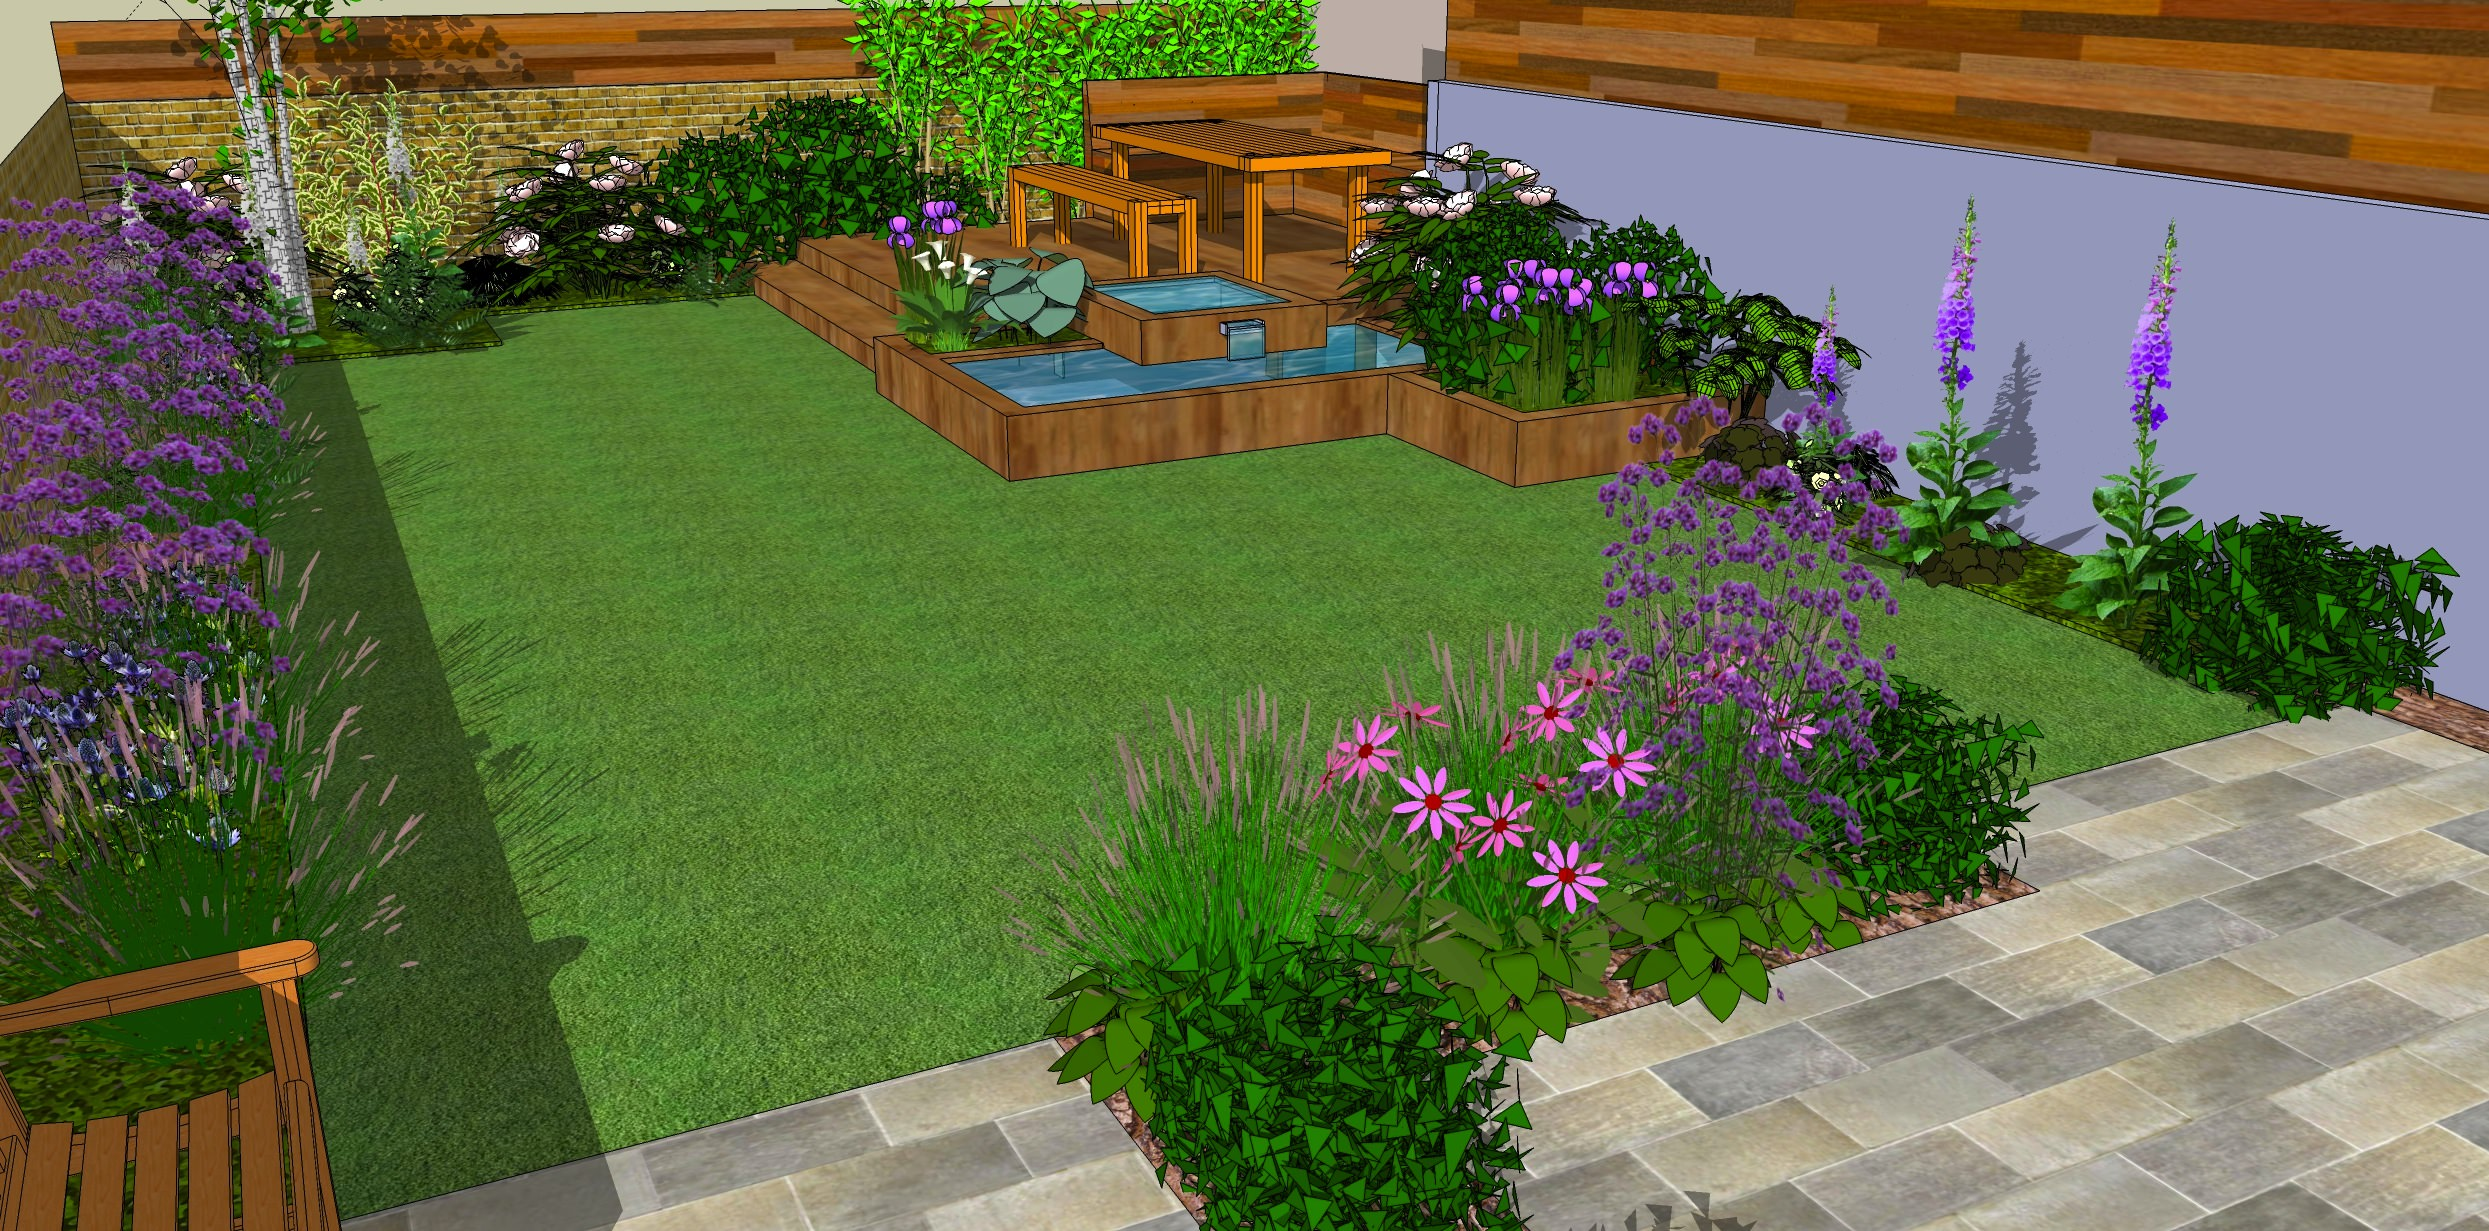 Low maintenance garden designs garden club london for Garden design images